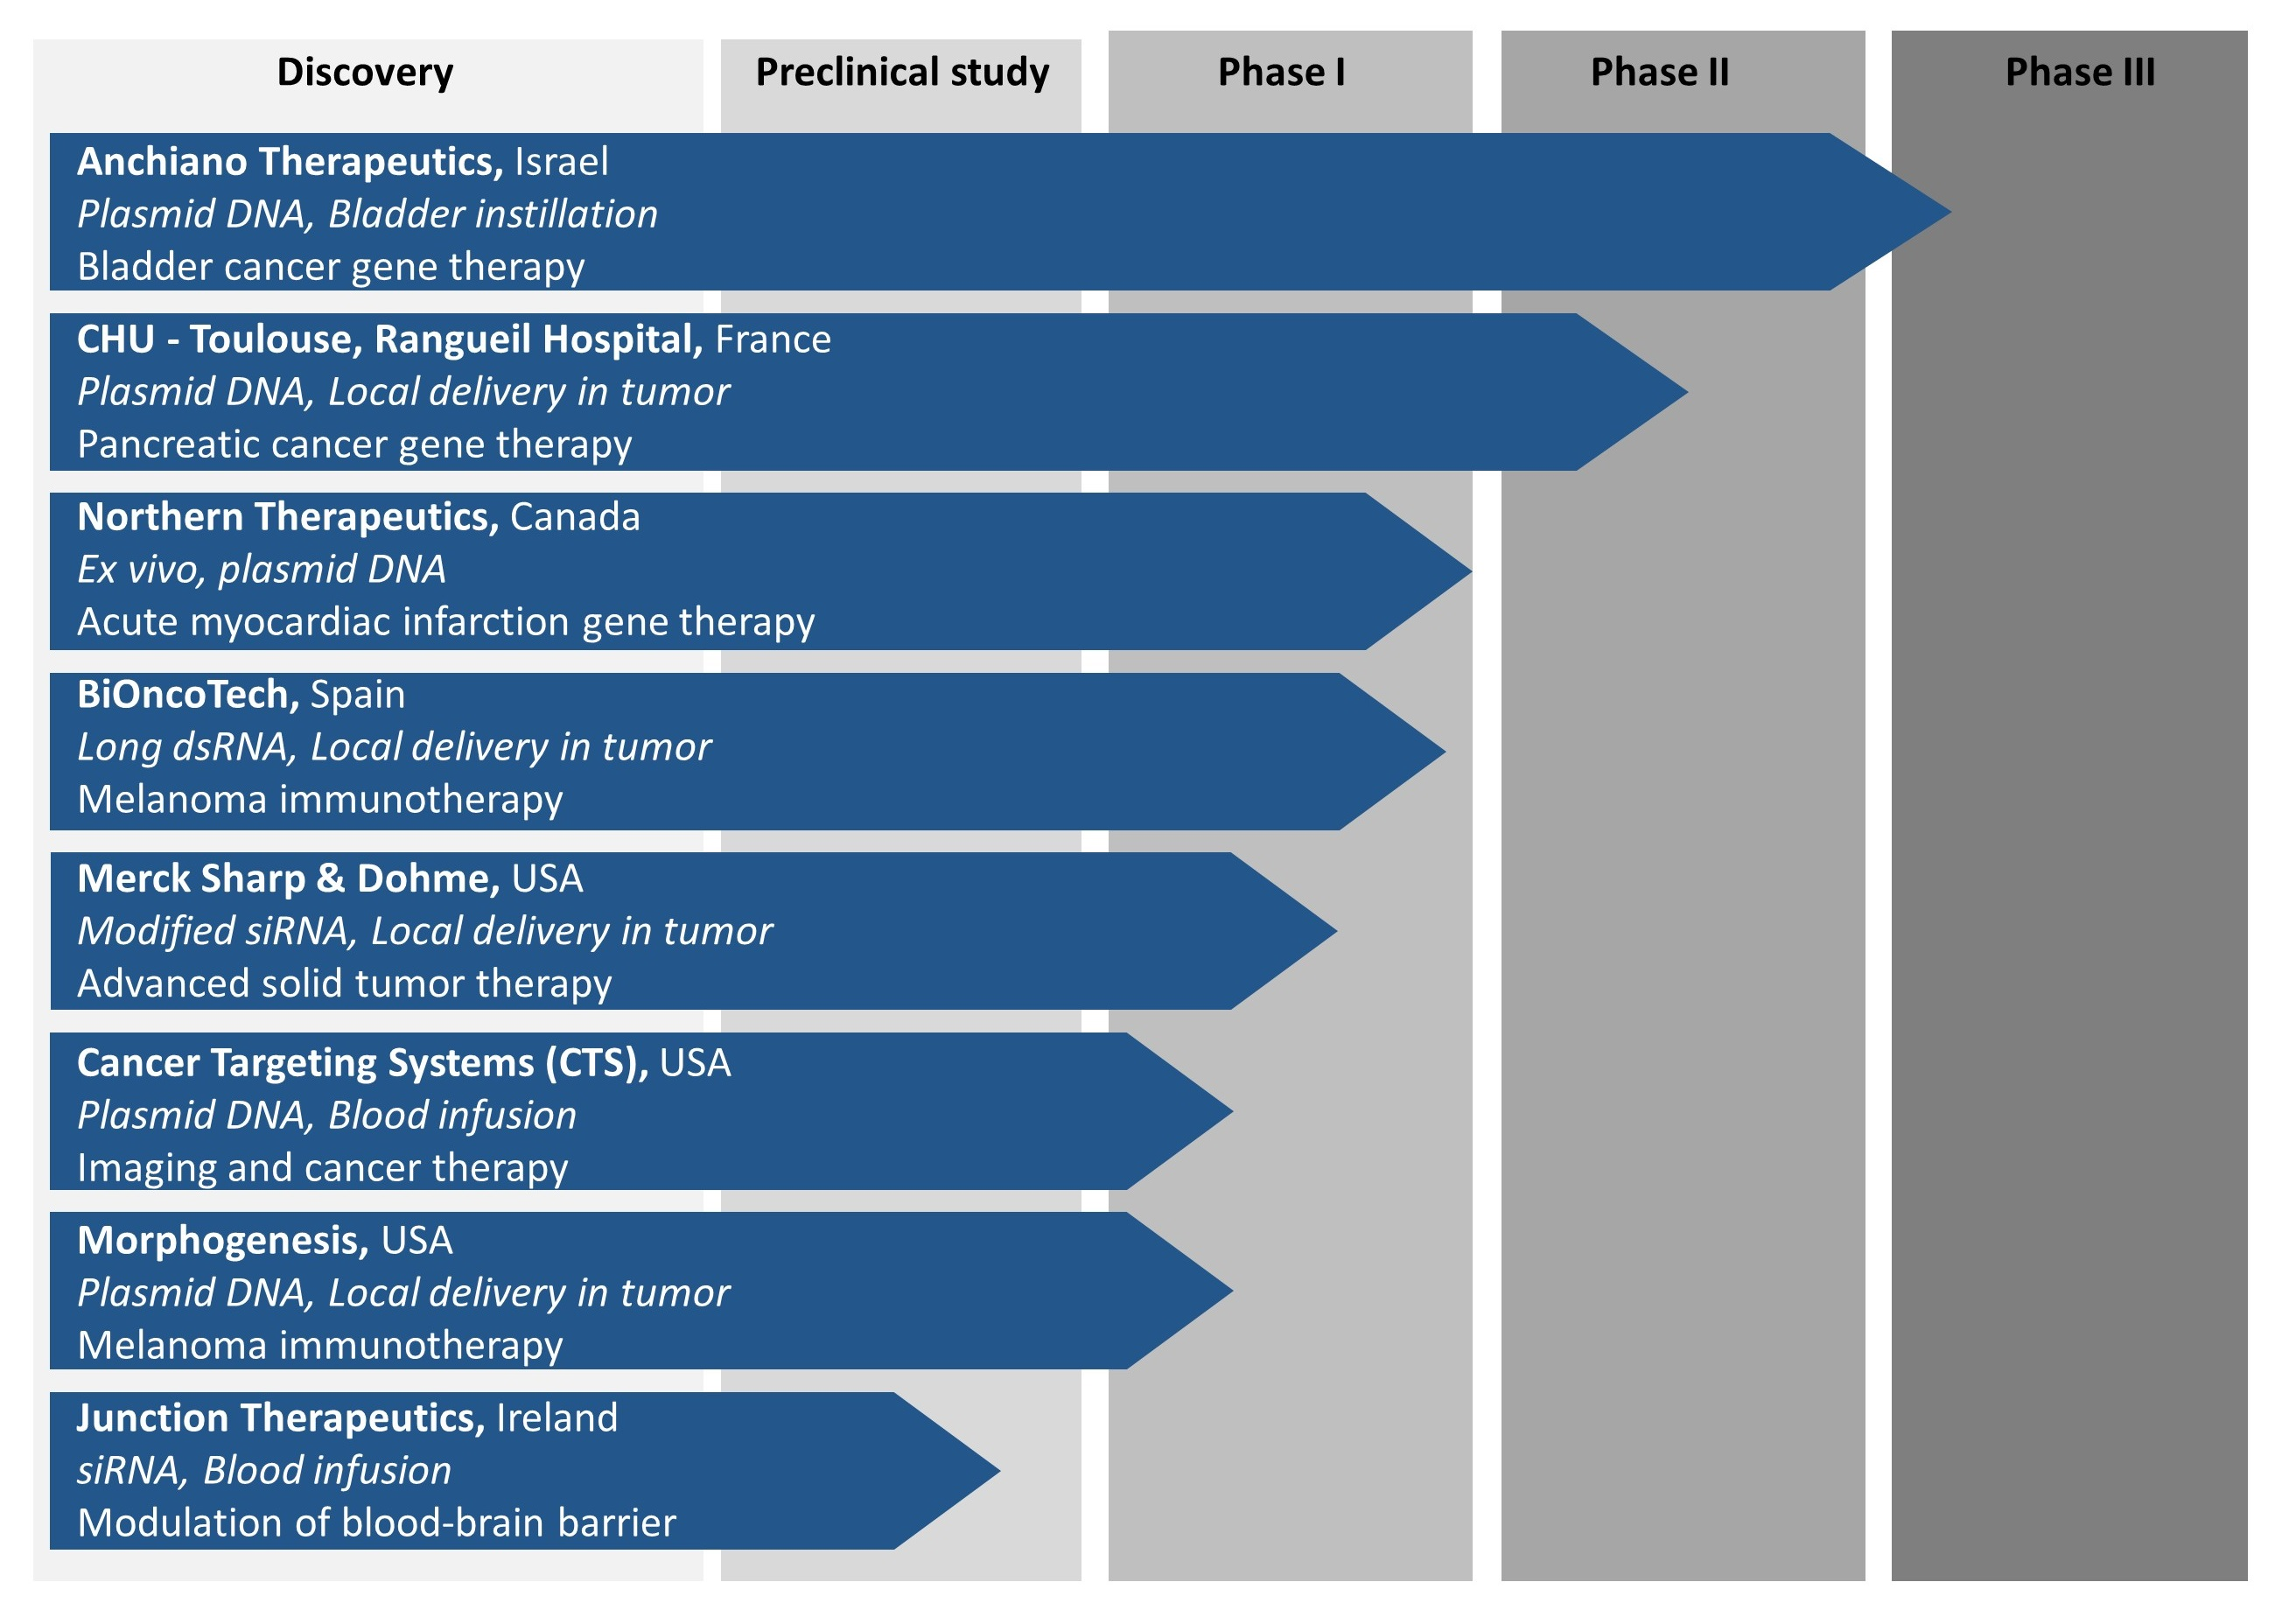 Fig.1: Clinical pipeline of ongoing preclinical and clinical trials using in vivo-jetPEI®